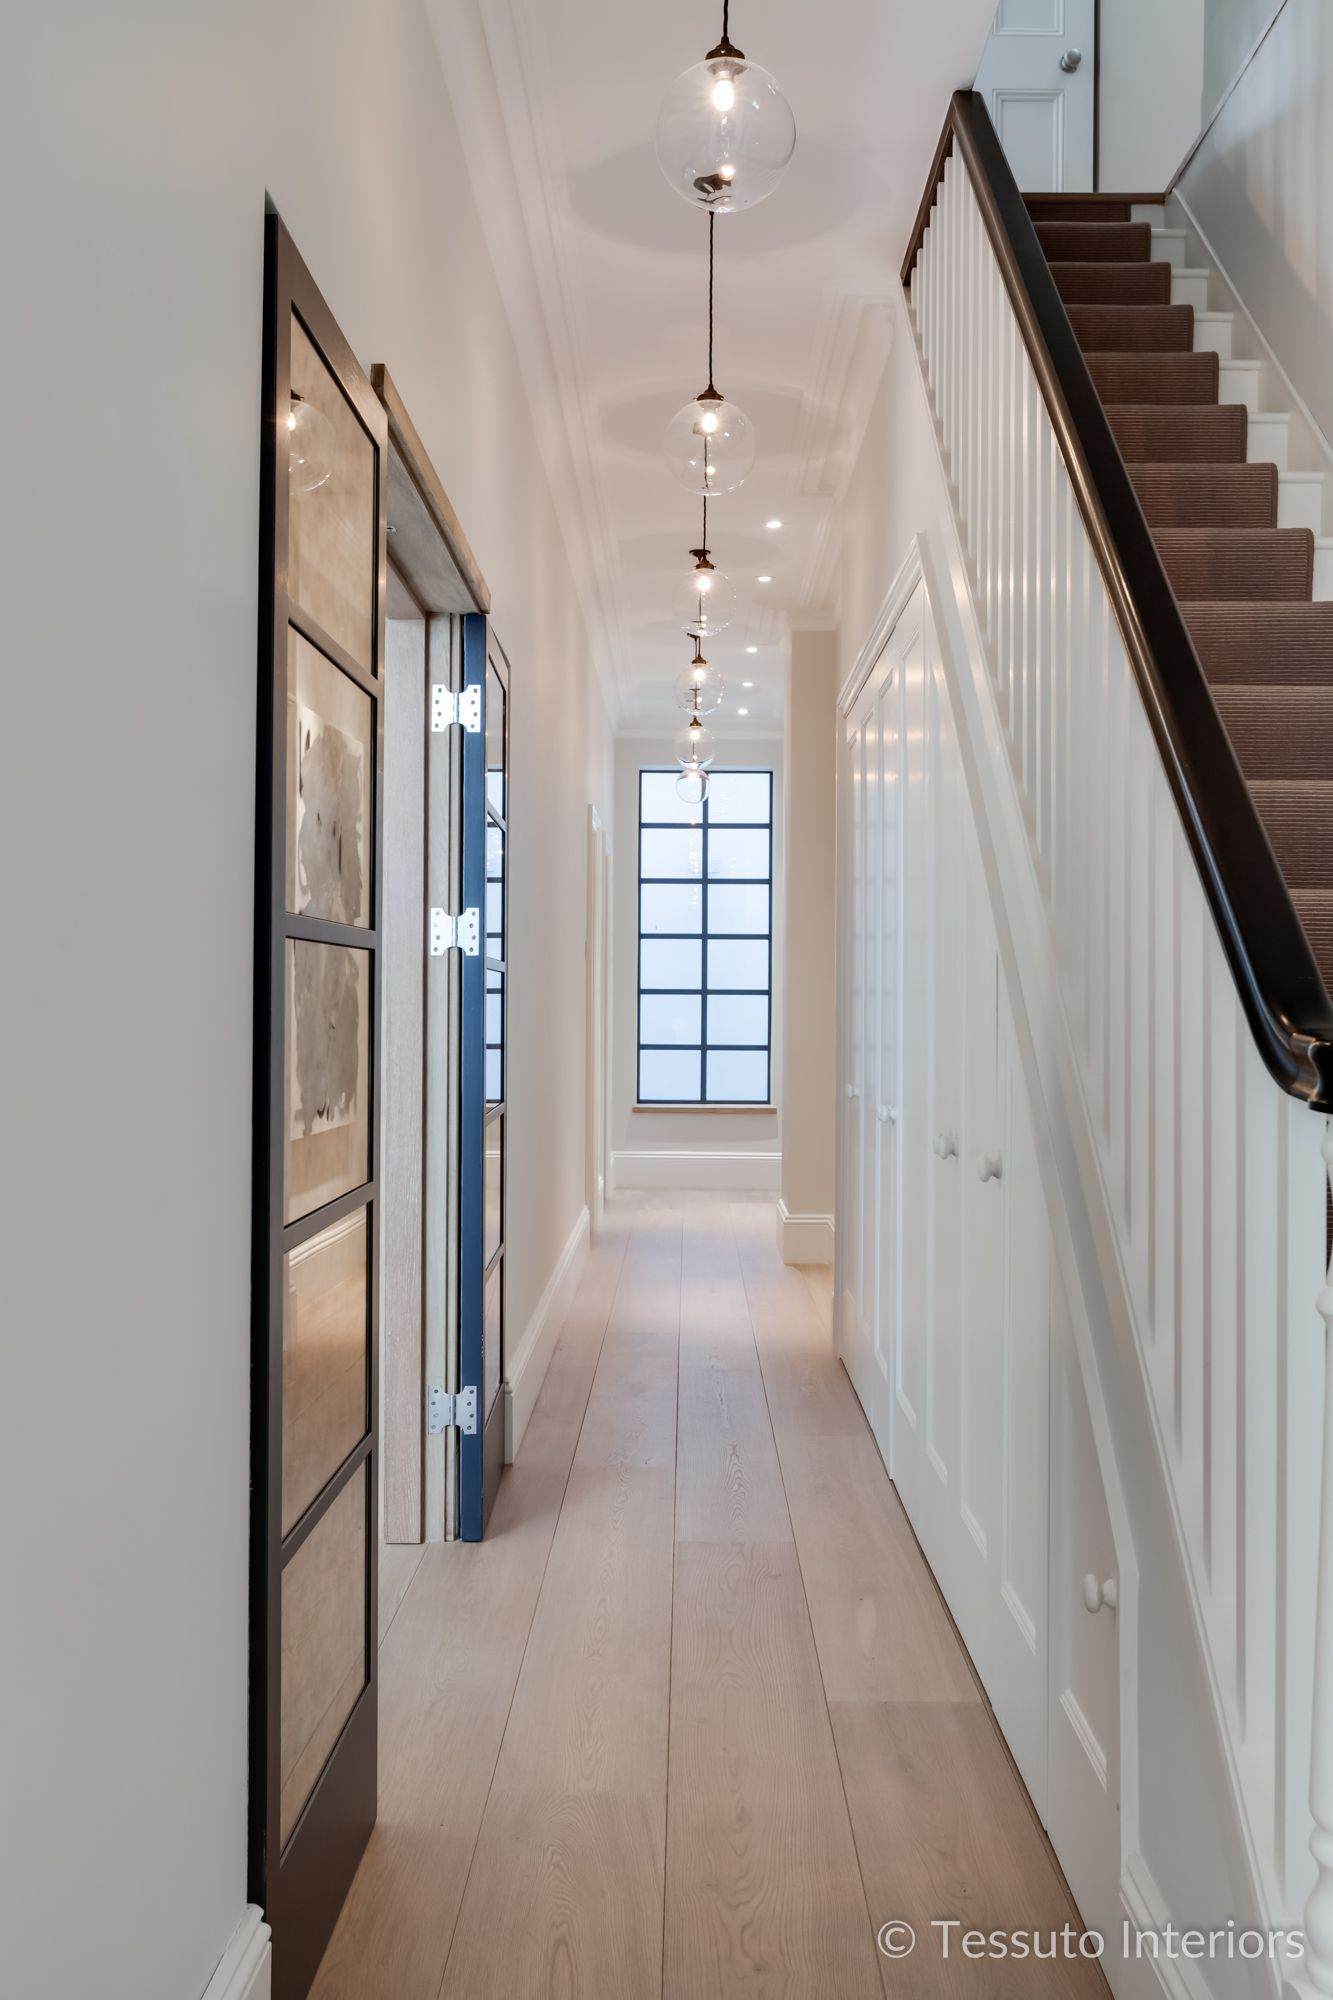 Tessuto Interiors Luxury Contemporary Hallway Pendant Lighting